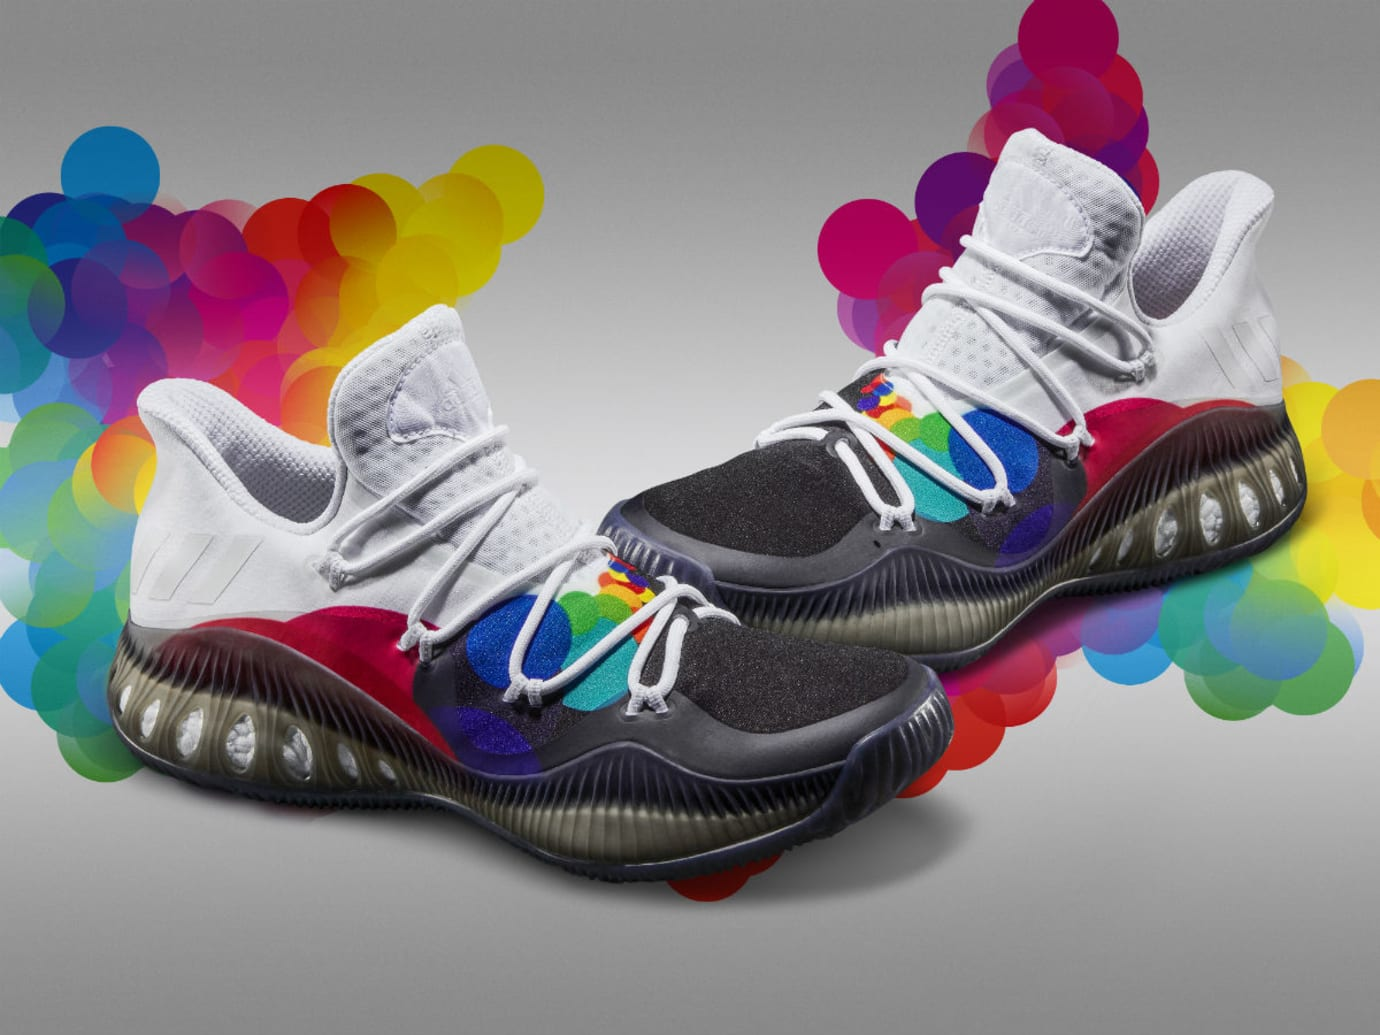 Adidas Pride Pack Crazy Explosive Low Release Date